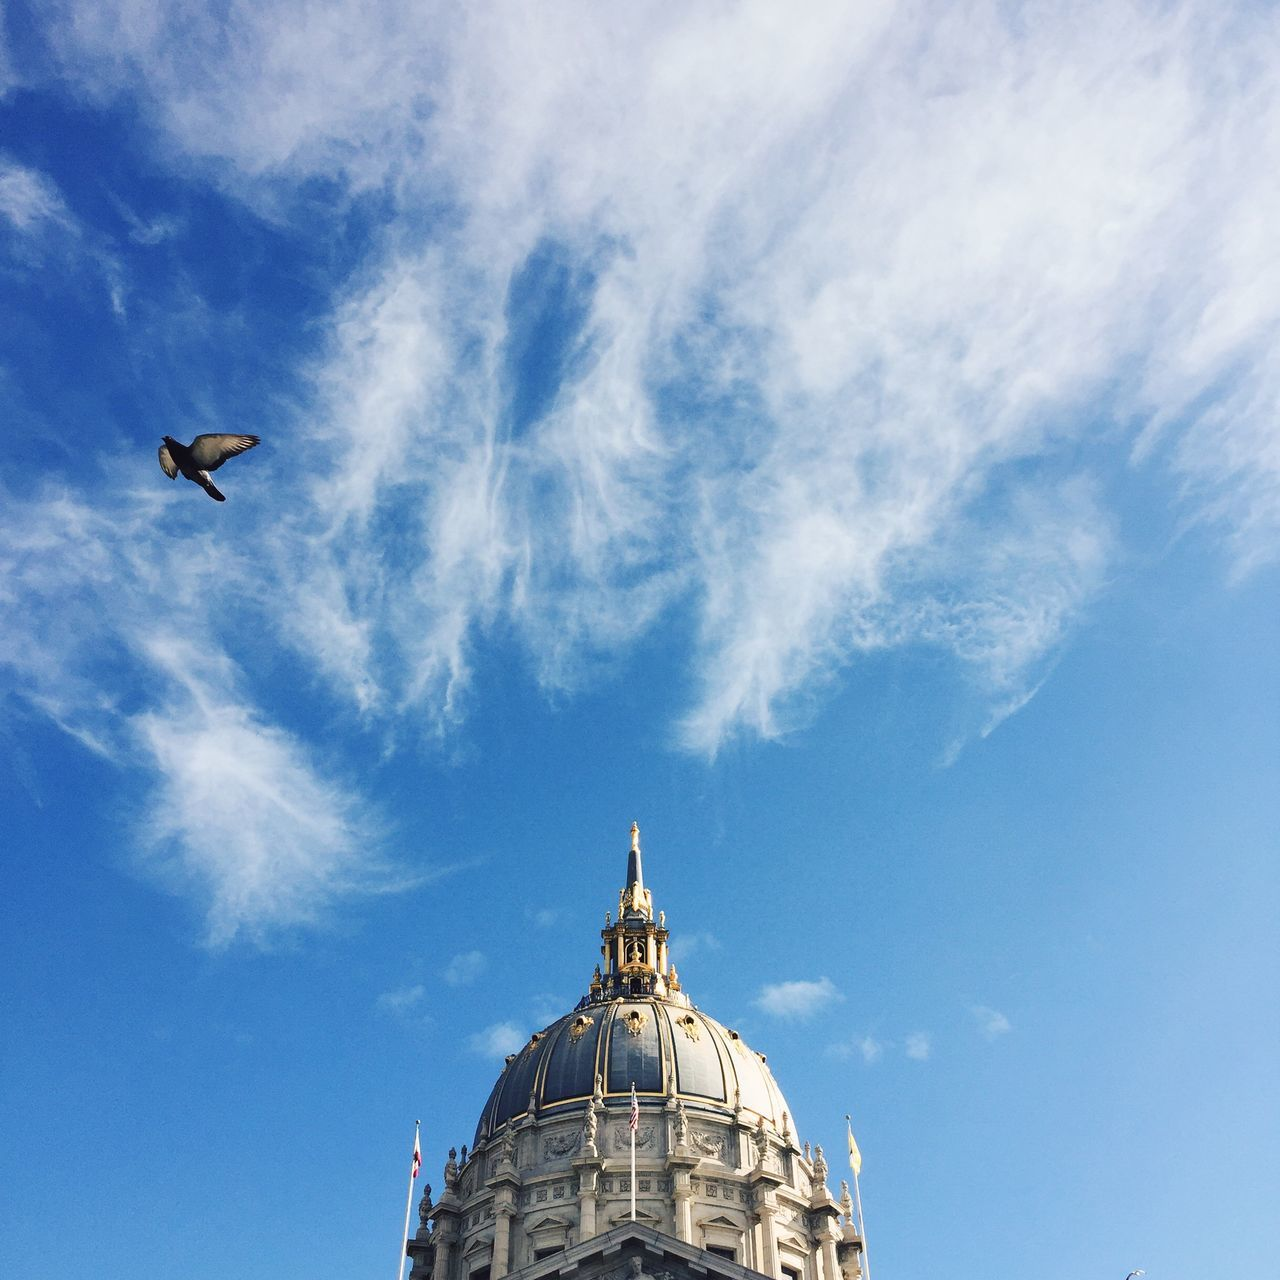 San Francisco City Hall, San Francisco, USA. Animal Themes Architecture Bird Blue Building Exterior California Cloud - Sky Day Flying IPhone IPhoneography Low Angle View No People Outdoors San Francisco San Francisco City Hall Sculpture Sky Square Statue USA